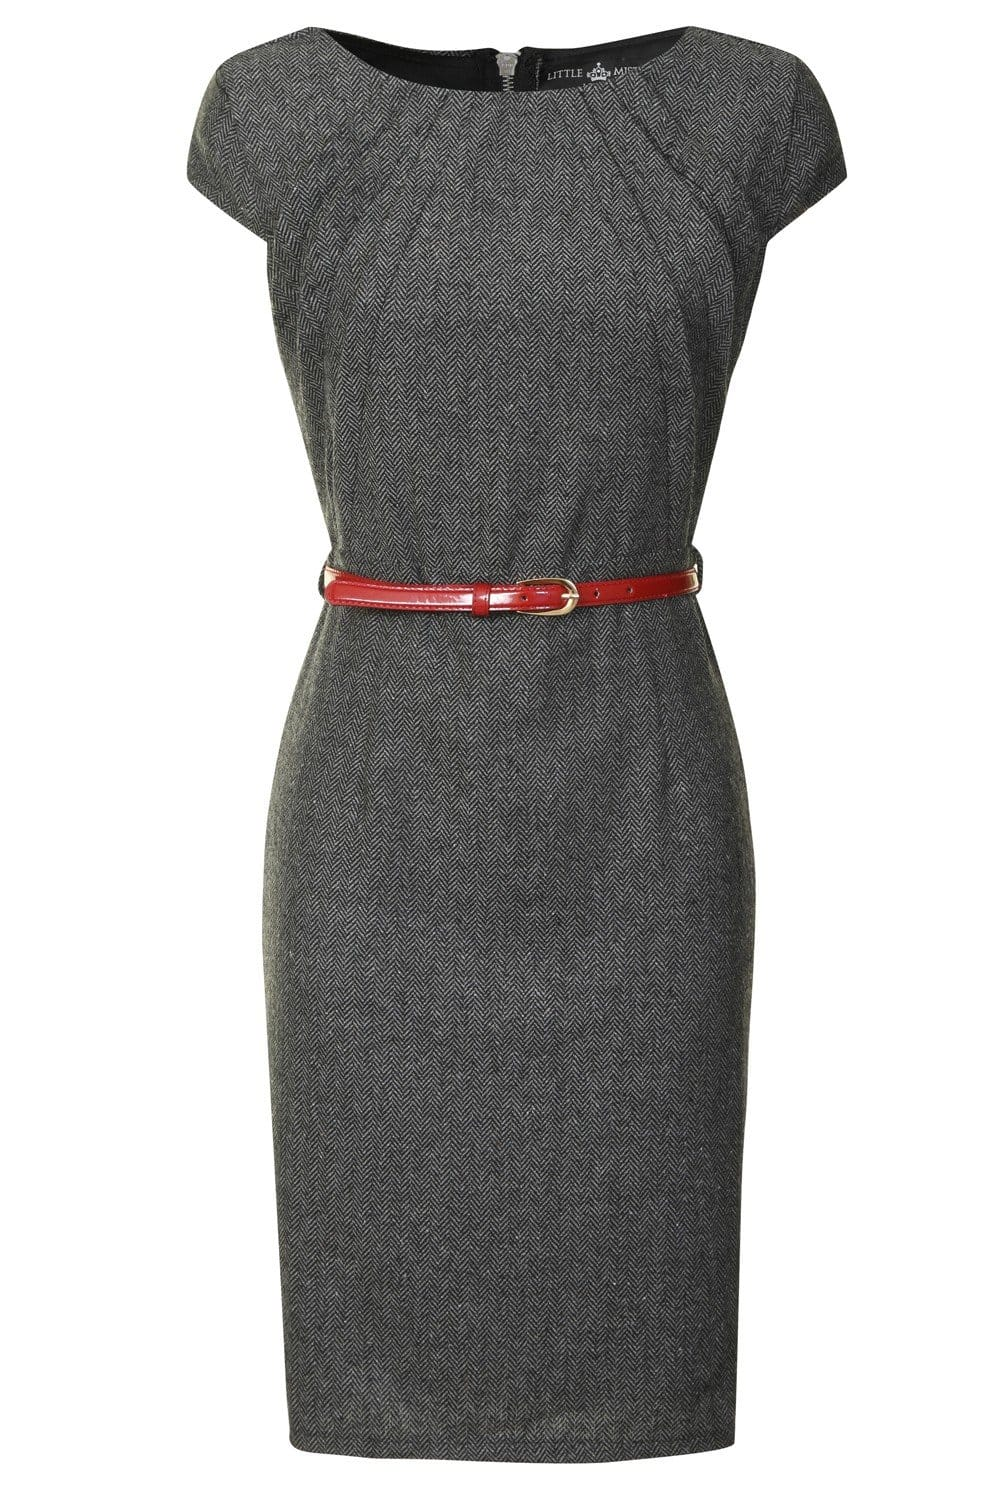 245 75 16 >> Little Mistress Tweed Fitted Dress with Pencil Skirt